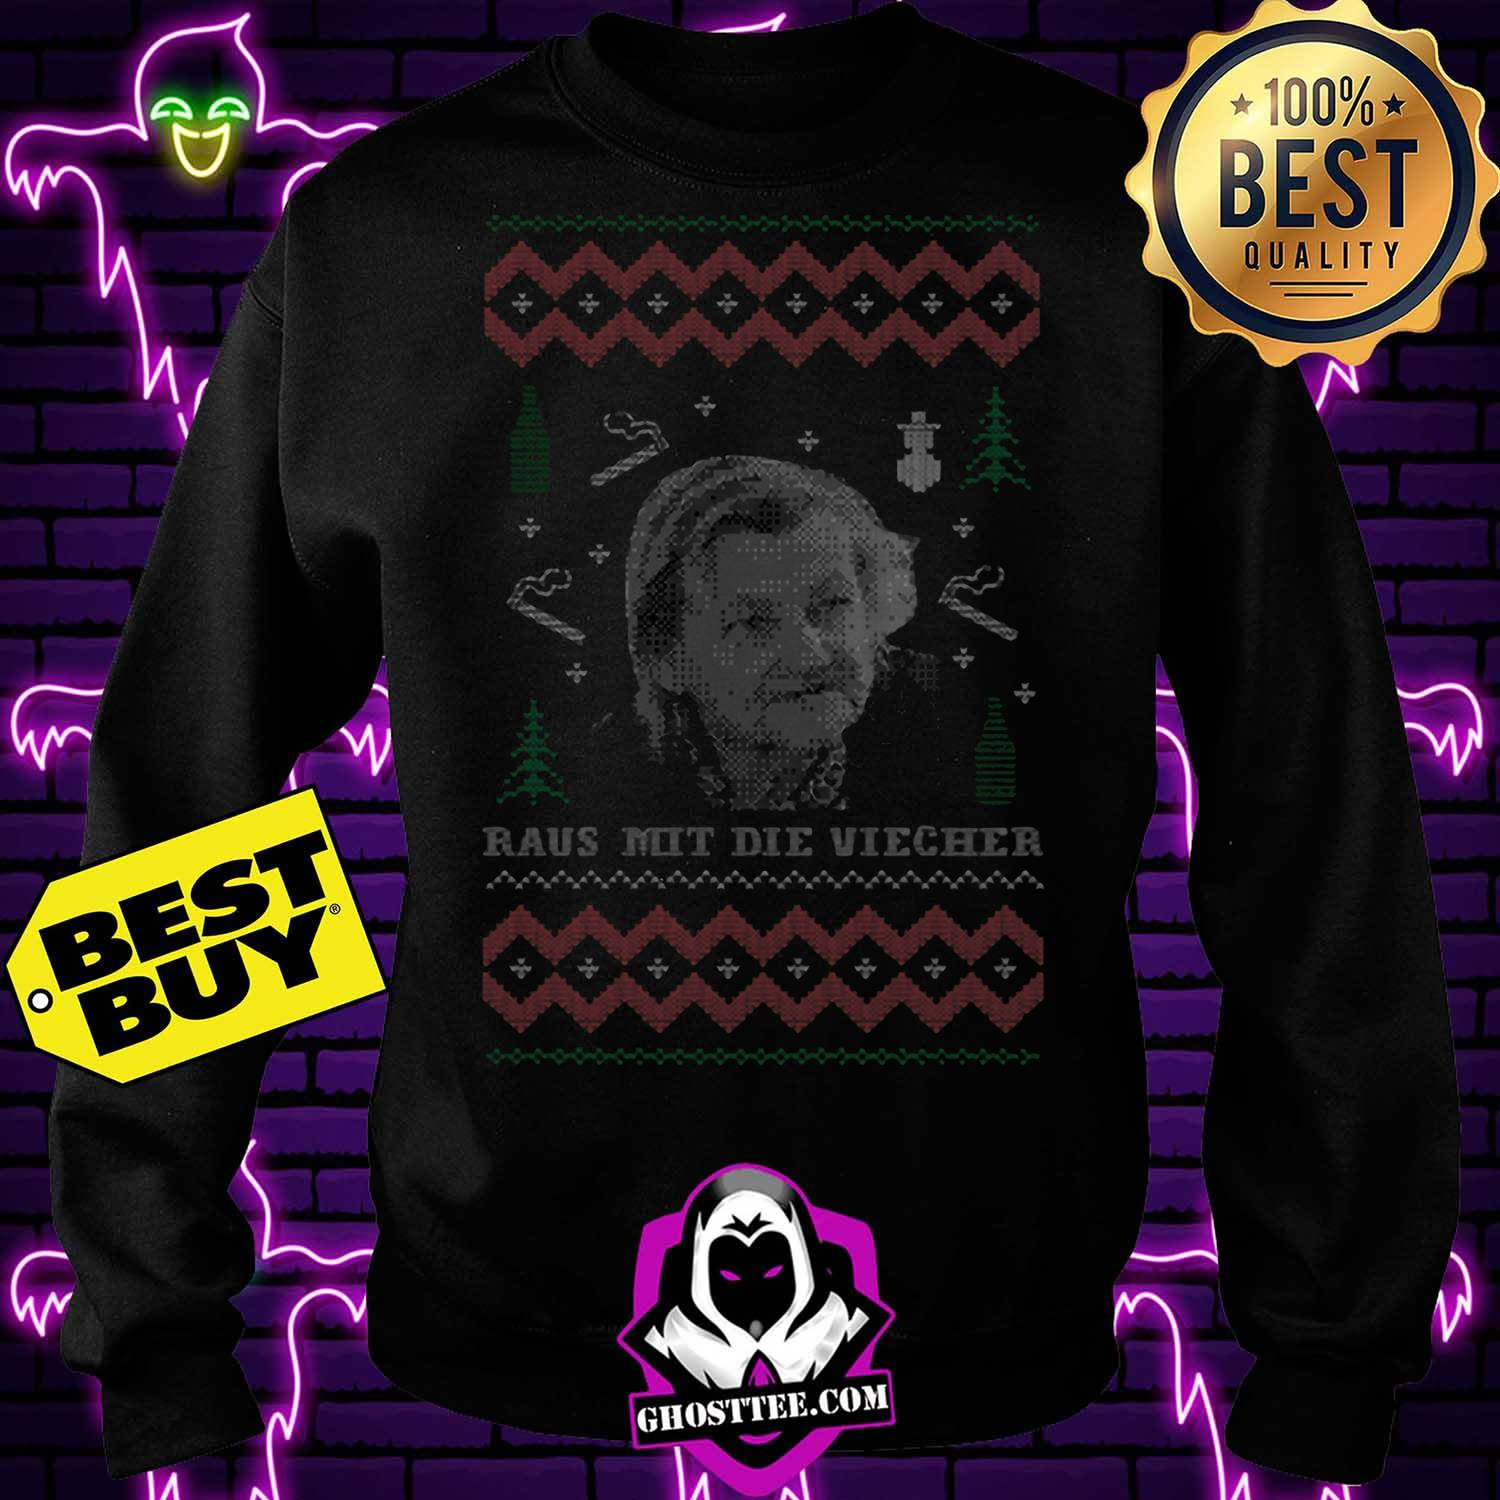 familie ritter raus mit die viecher ugly christmas sweatshirt - Familie Ritter Raus Mit Die Viecher ugly Christmas shirt